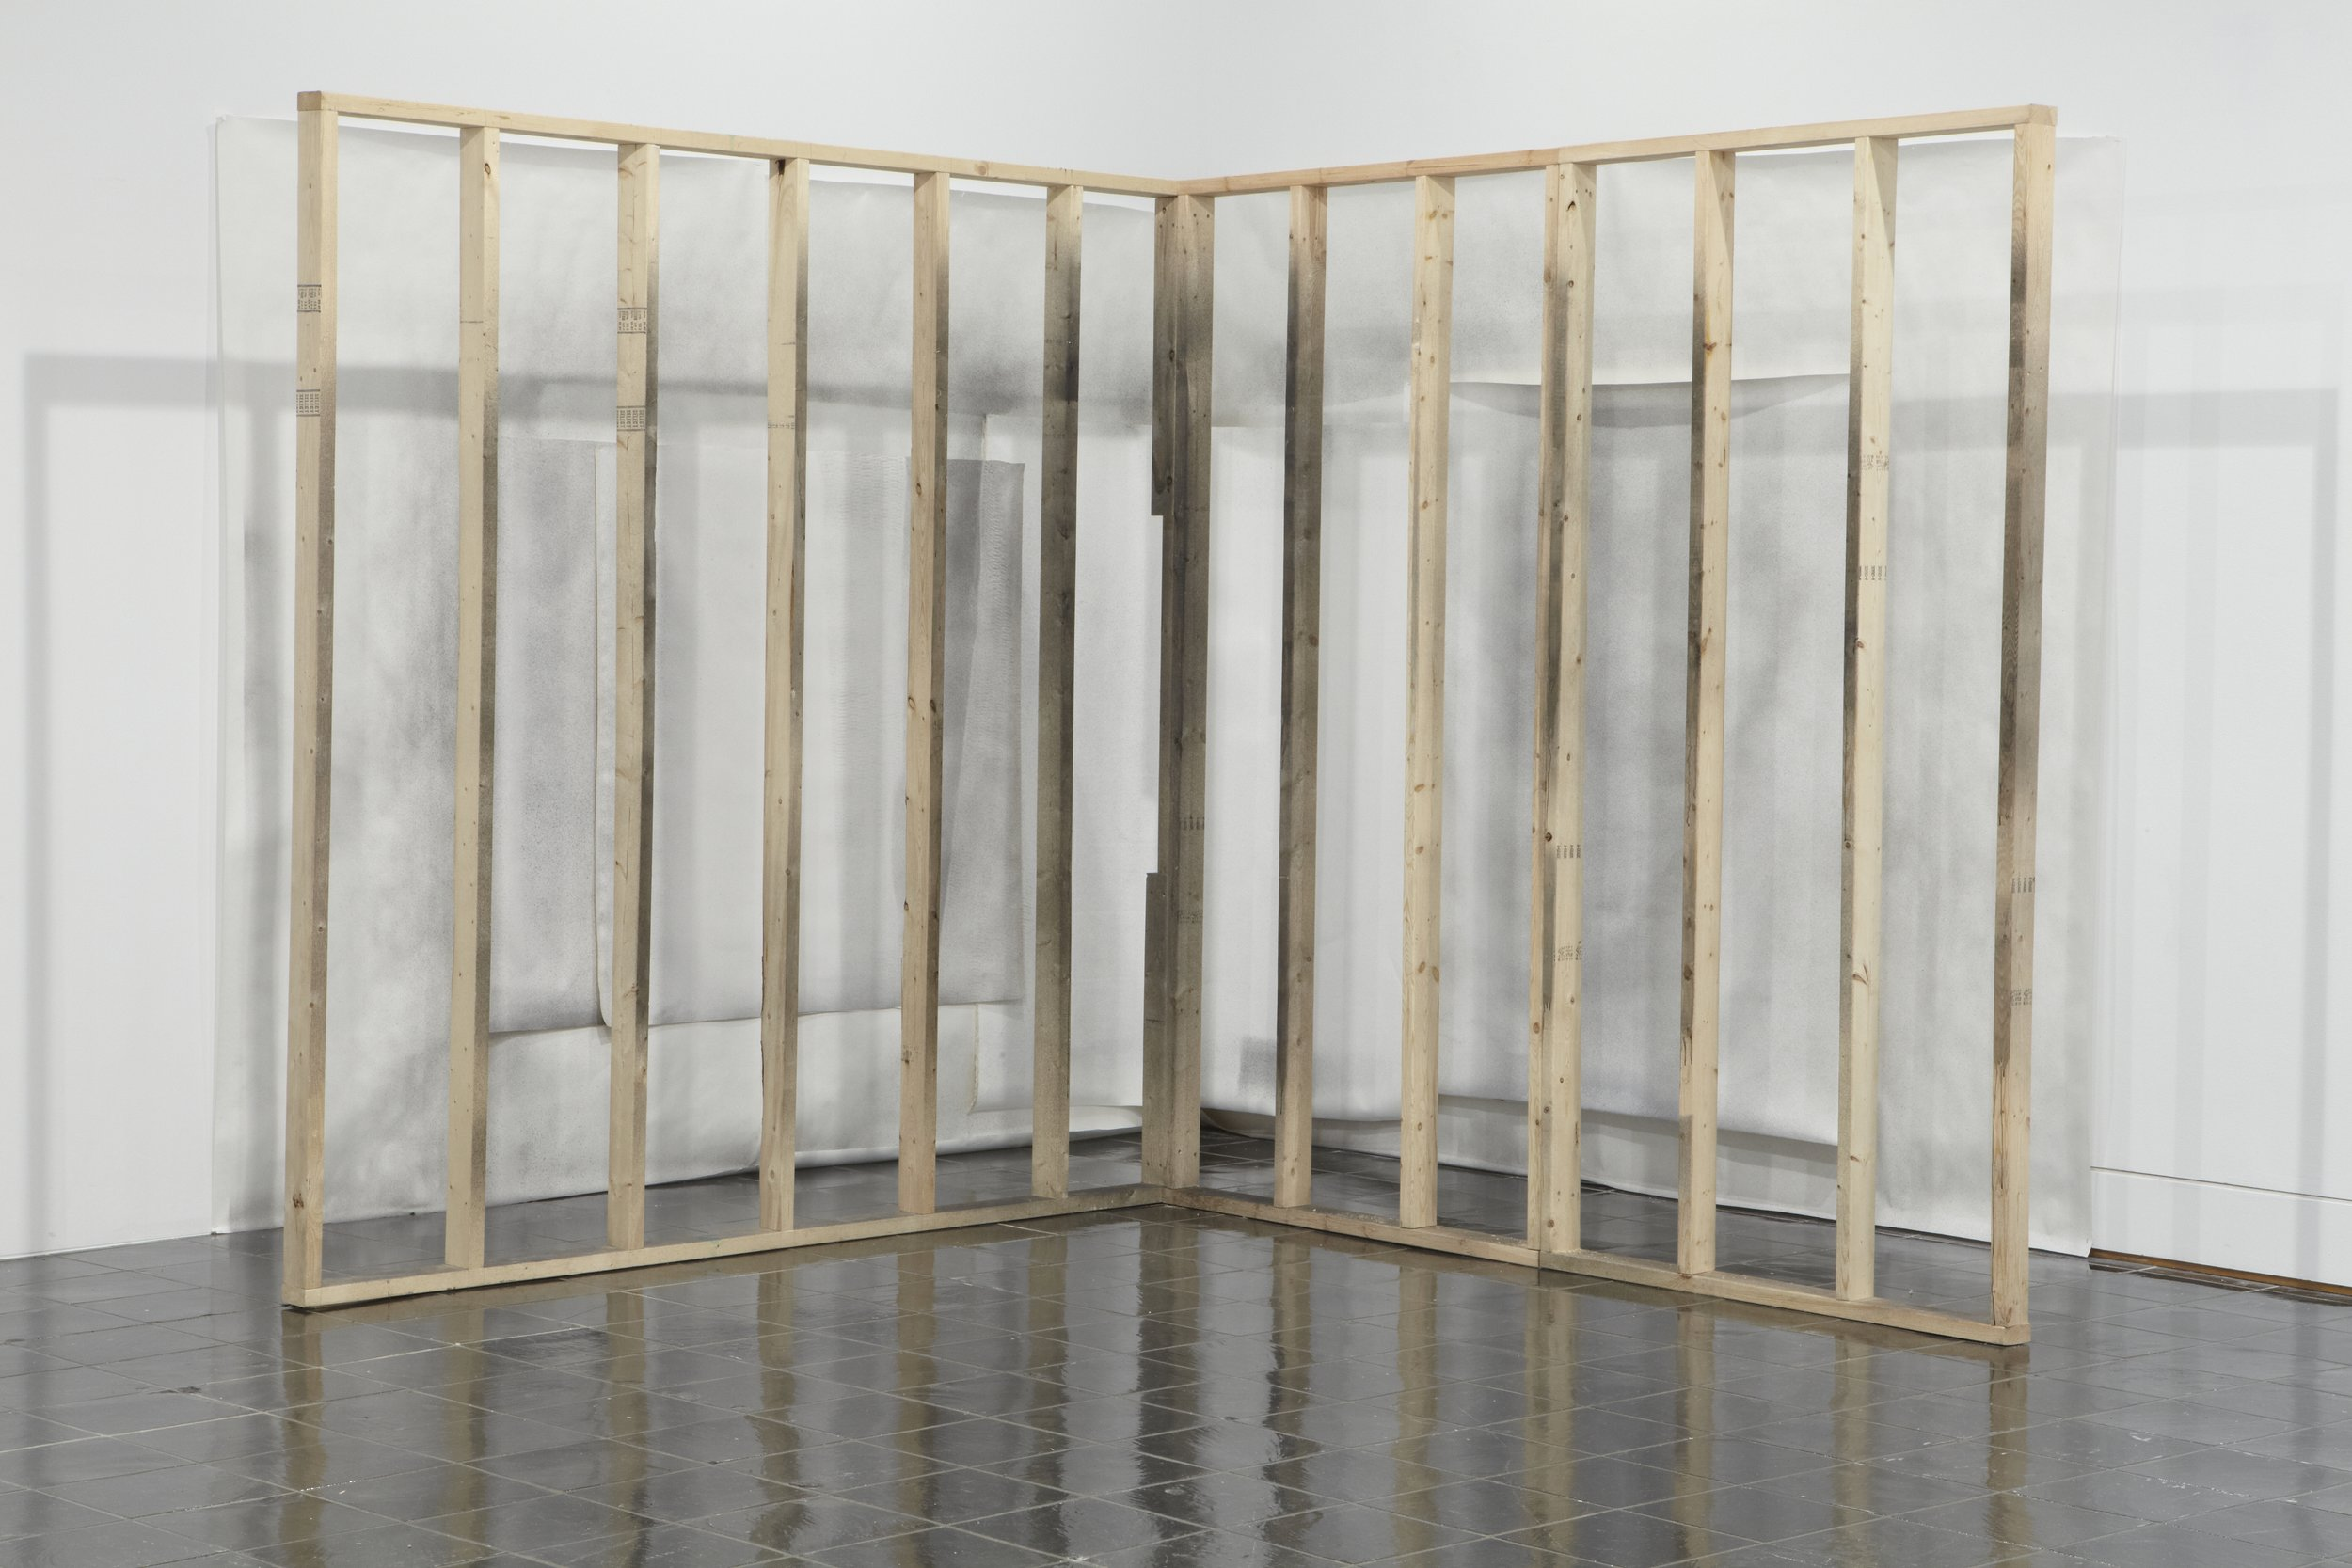 Laura Lisbon,  Corner Set-up (Wall Displacement) , 2009. Wood, paper, canvas, acrylic paint dimensions variable. Courtesy of the artist